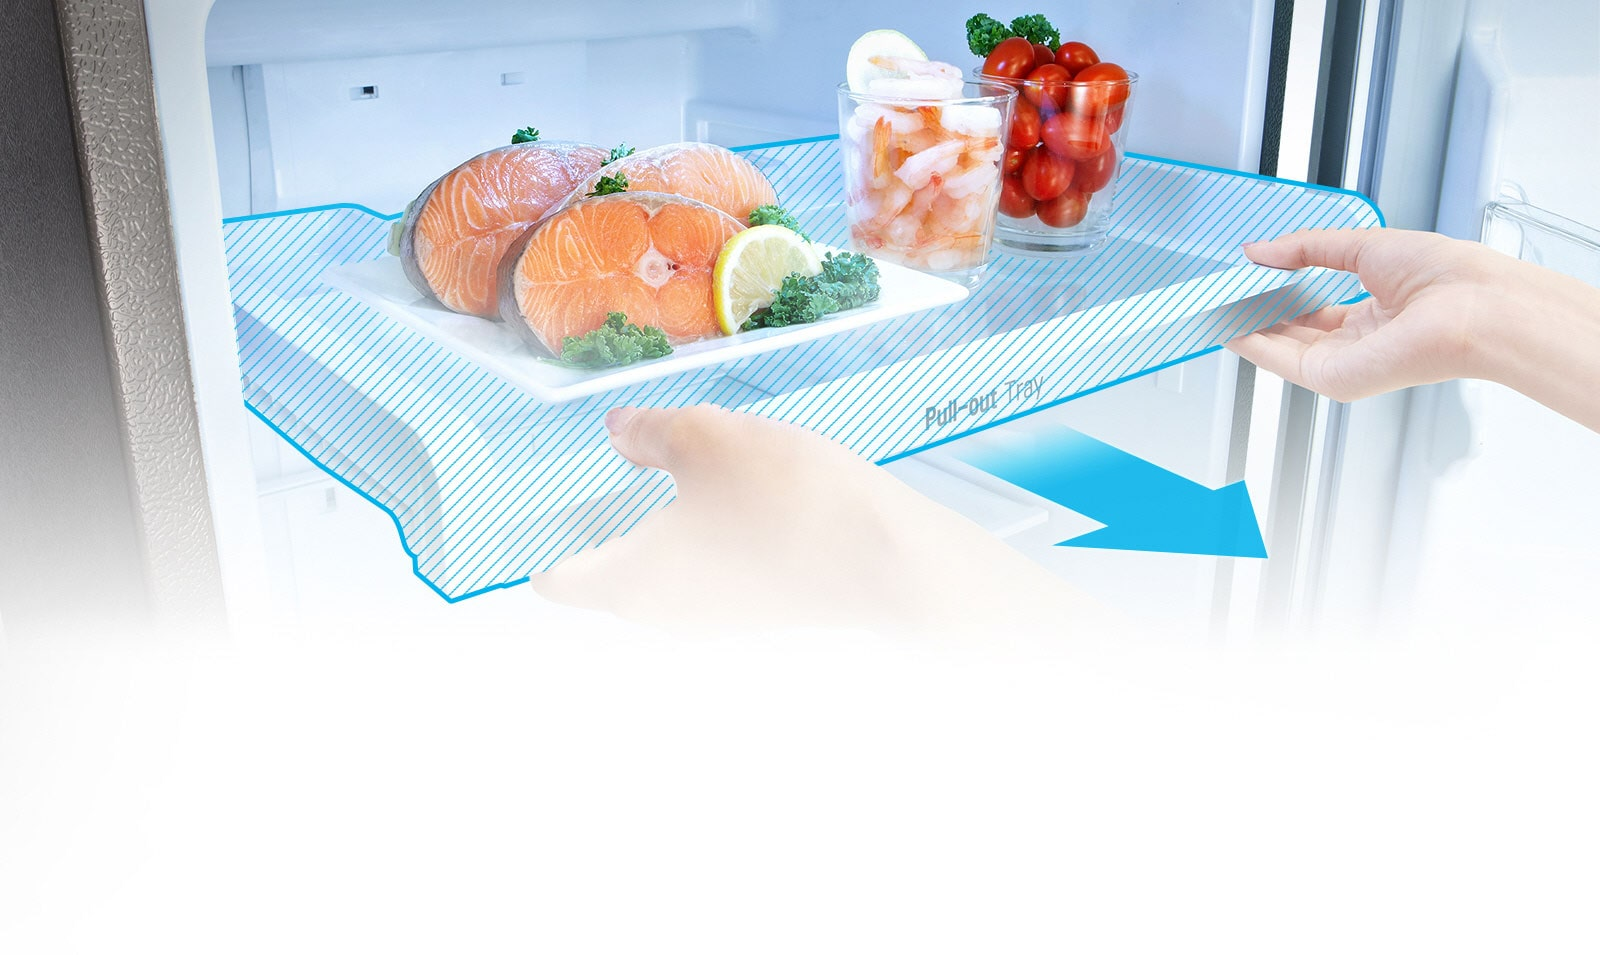 Removable tray